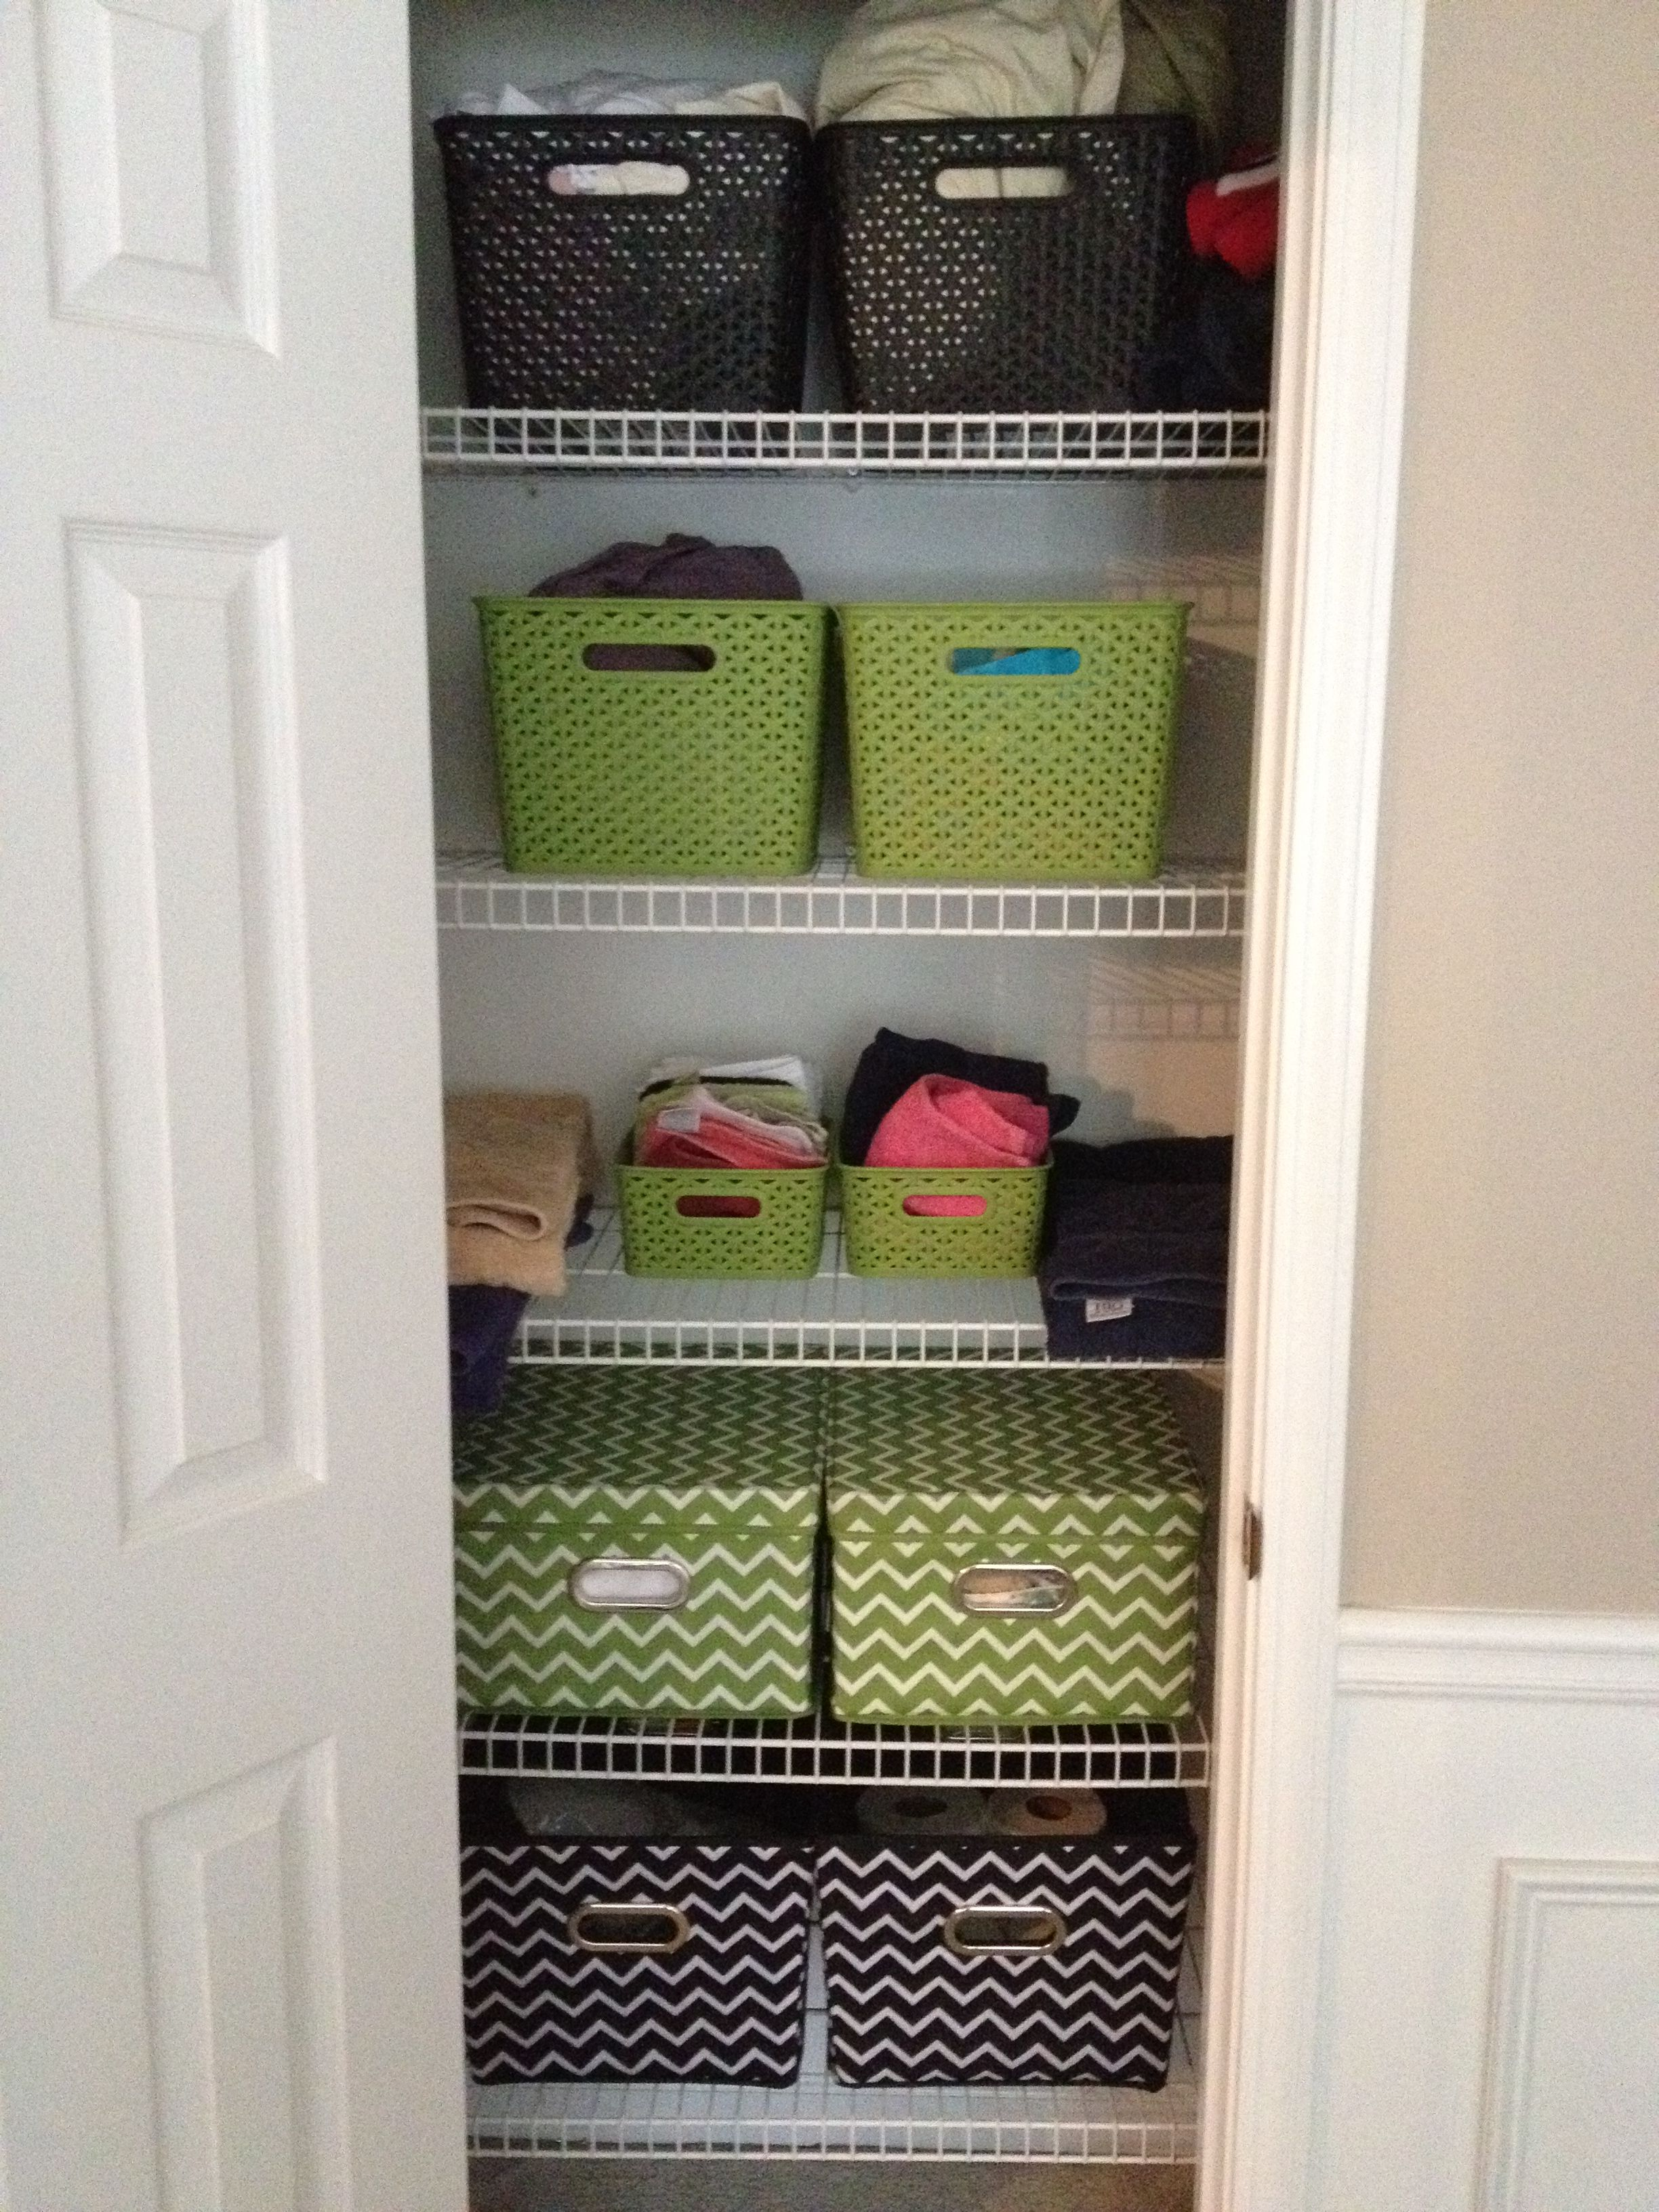 Making Your Linen Closet Color Coordinated Might Motivate You To Keep It Clean